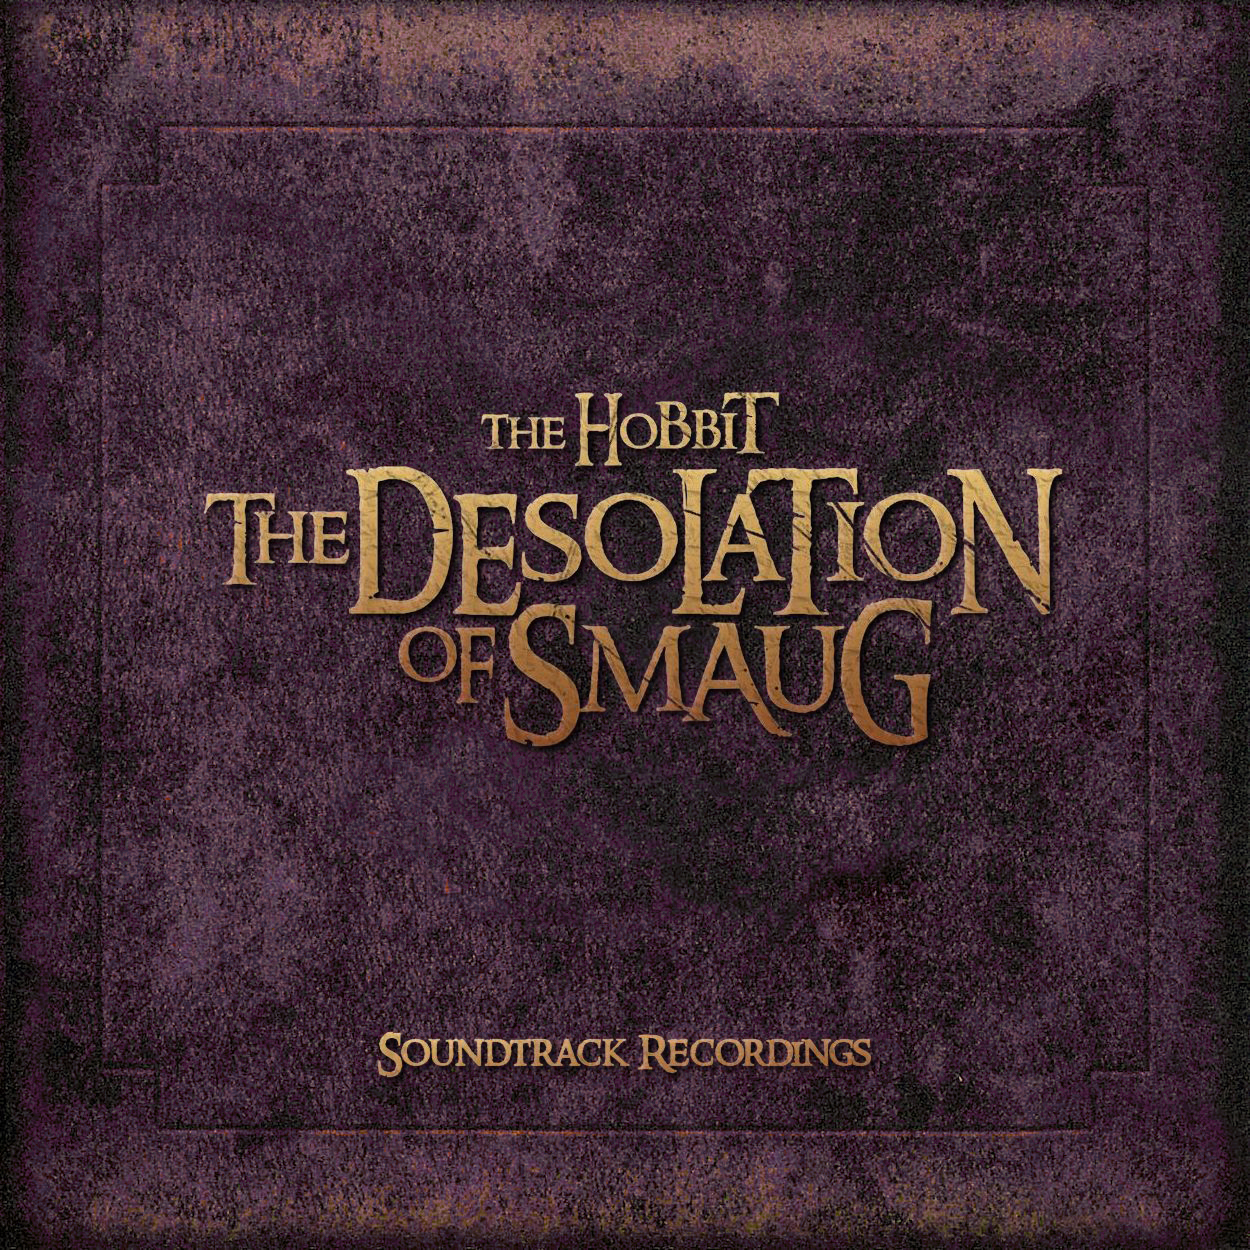 The Hobbit The Desolation Of Smaug Soundtrack Recordings